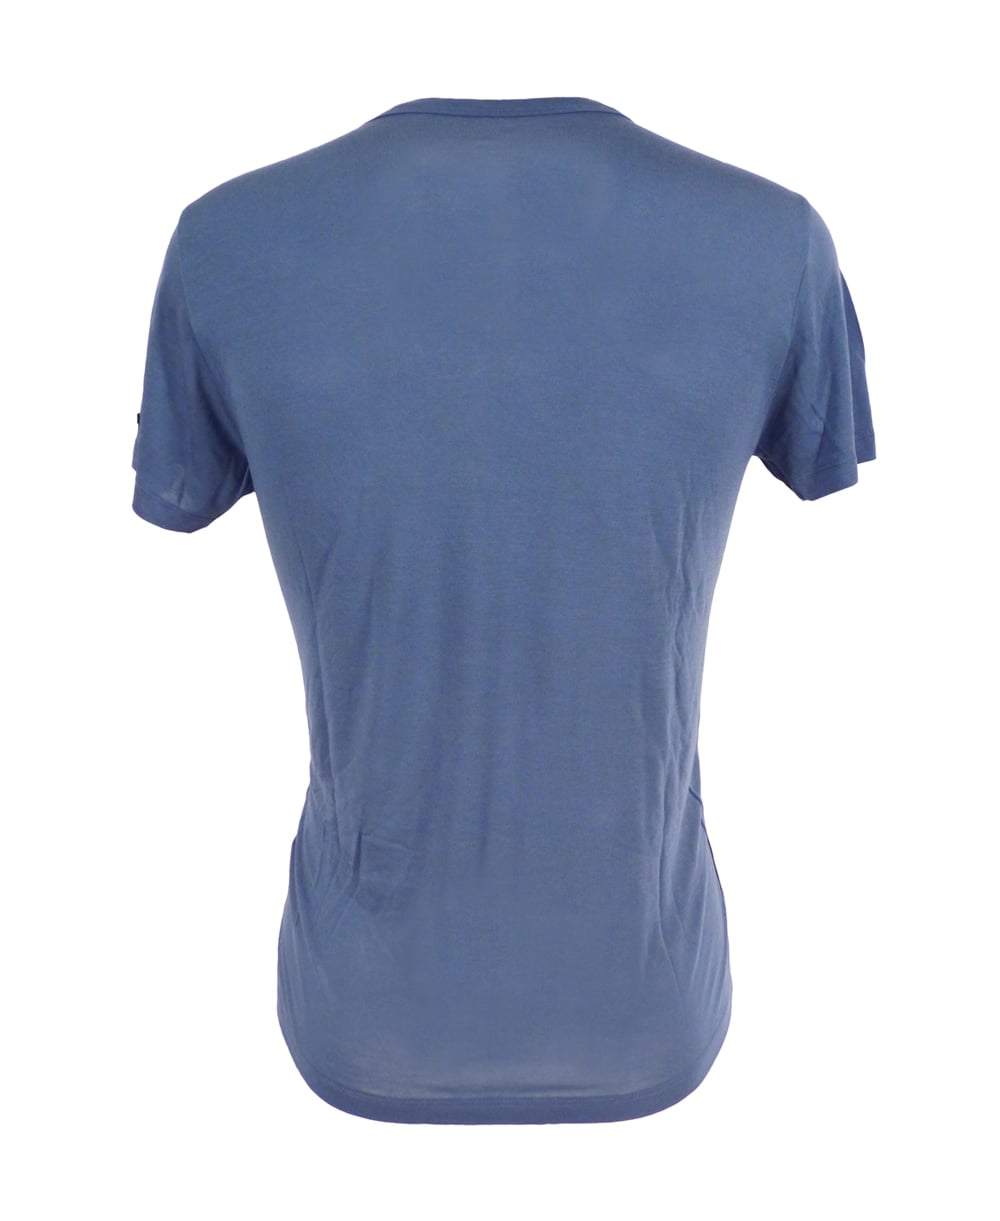 Replay Bamboo Fibre T Shirt In Blue Replay From Jonathan